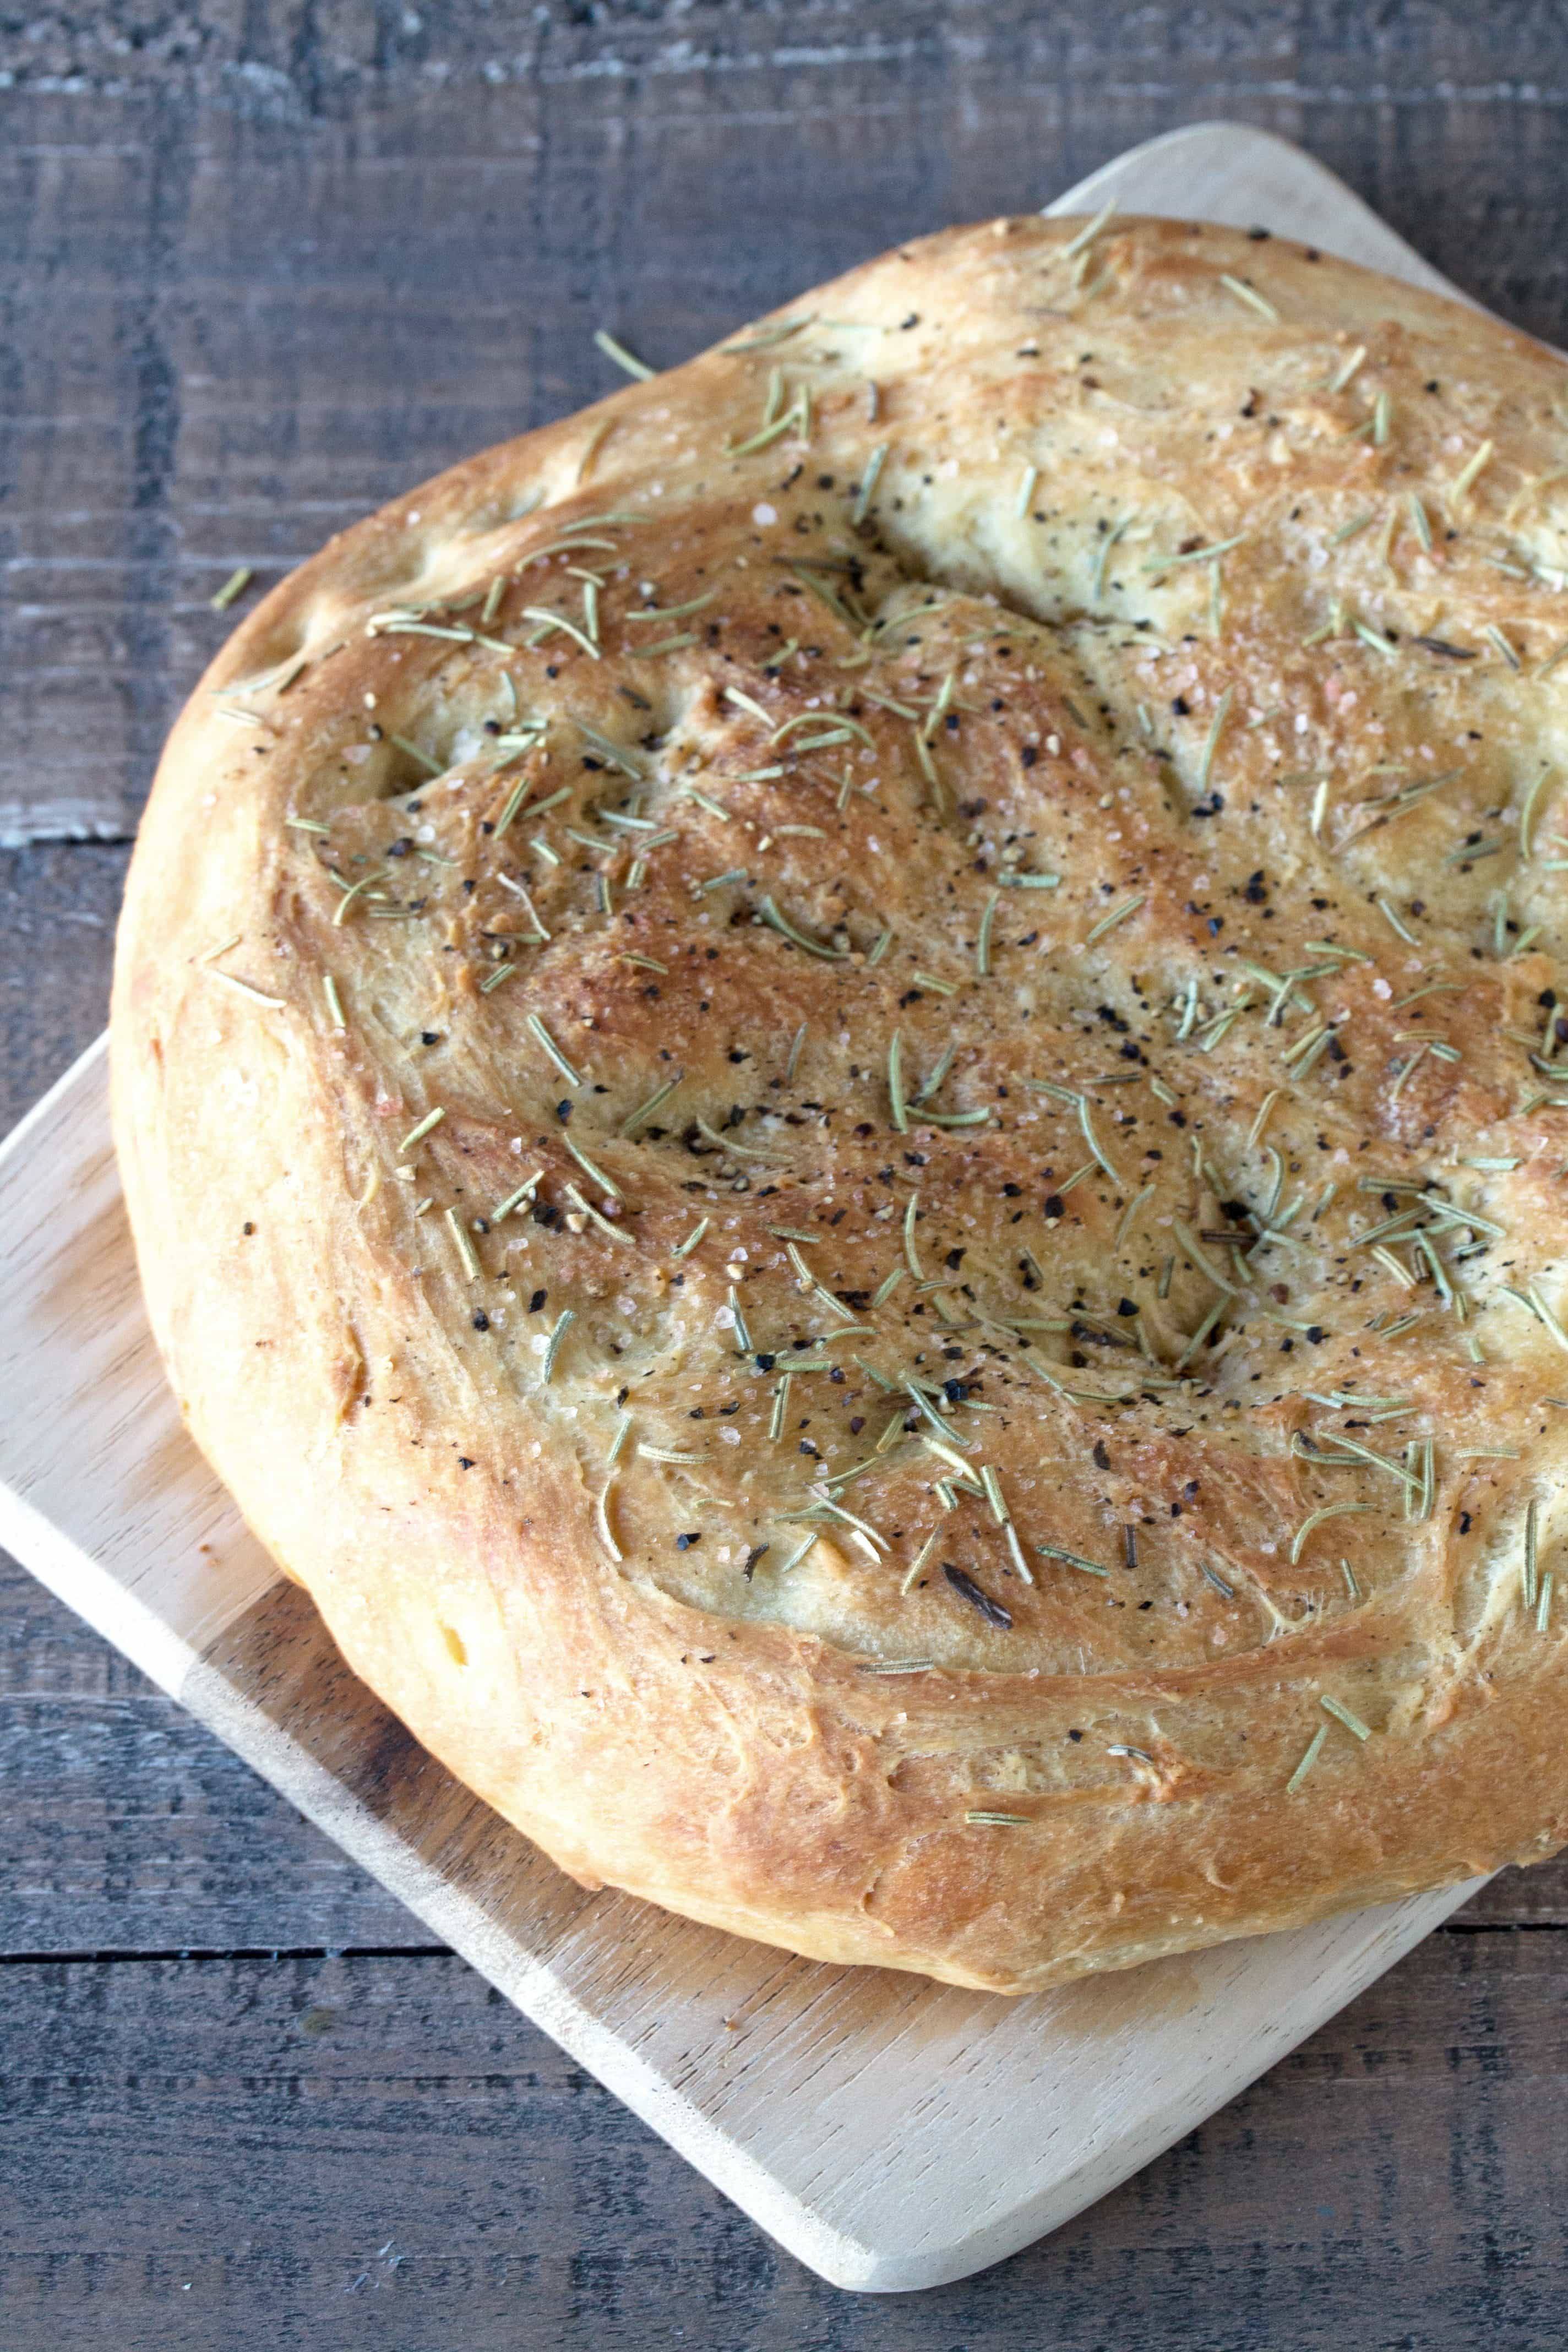 Easy Homemade Rosemary Focaccia makes the most delicious sandwiches and is heavenly along side a bowl of soup. You are going to fall in love and make this all year long!